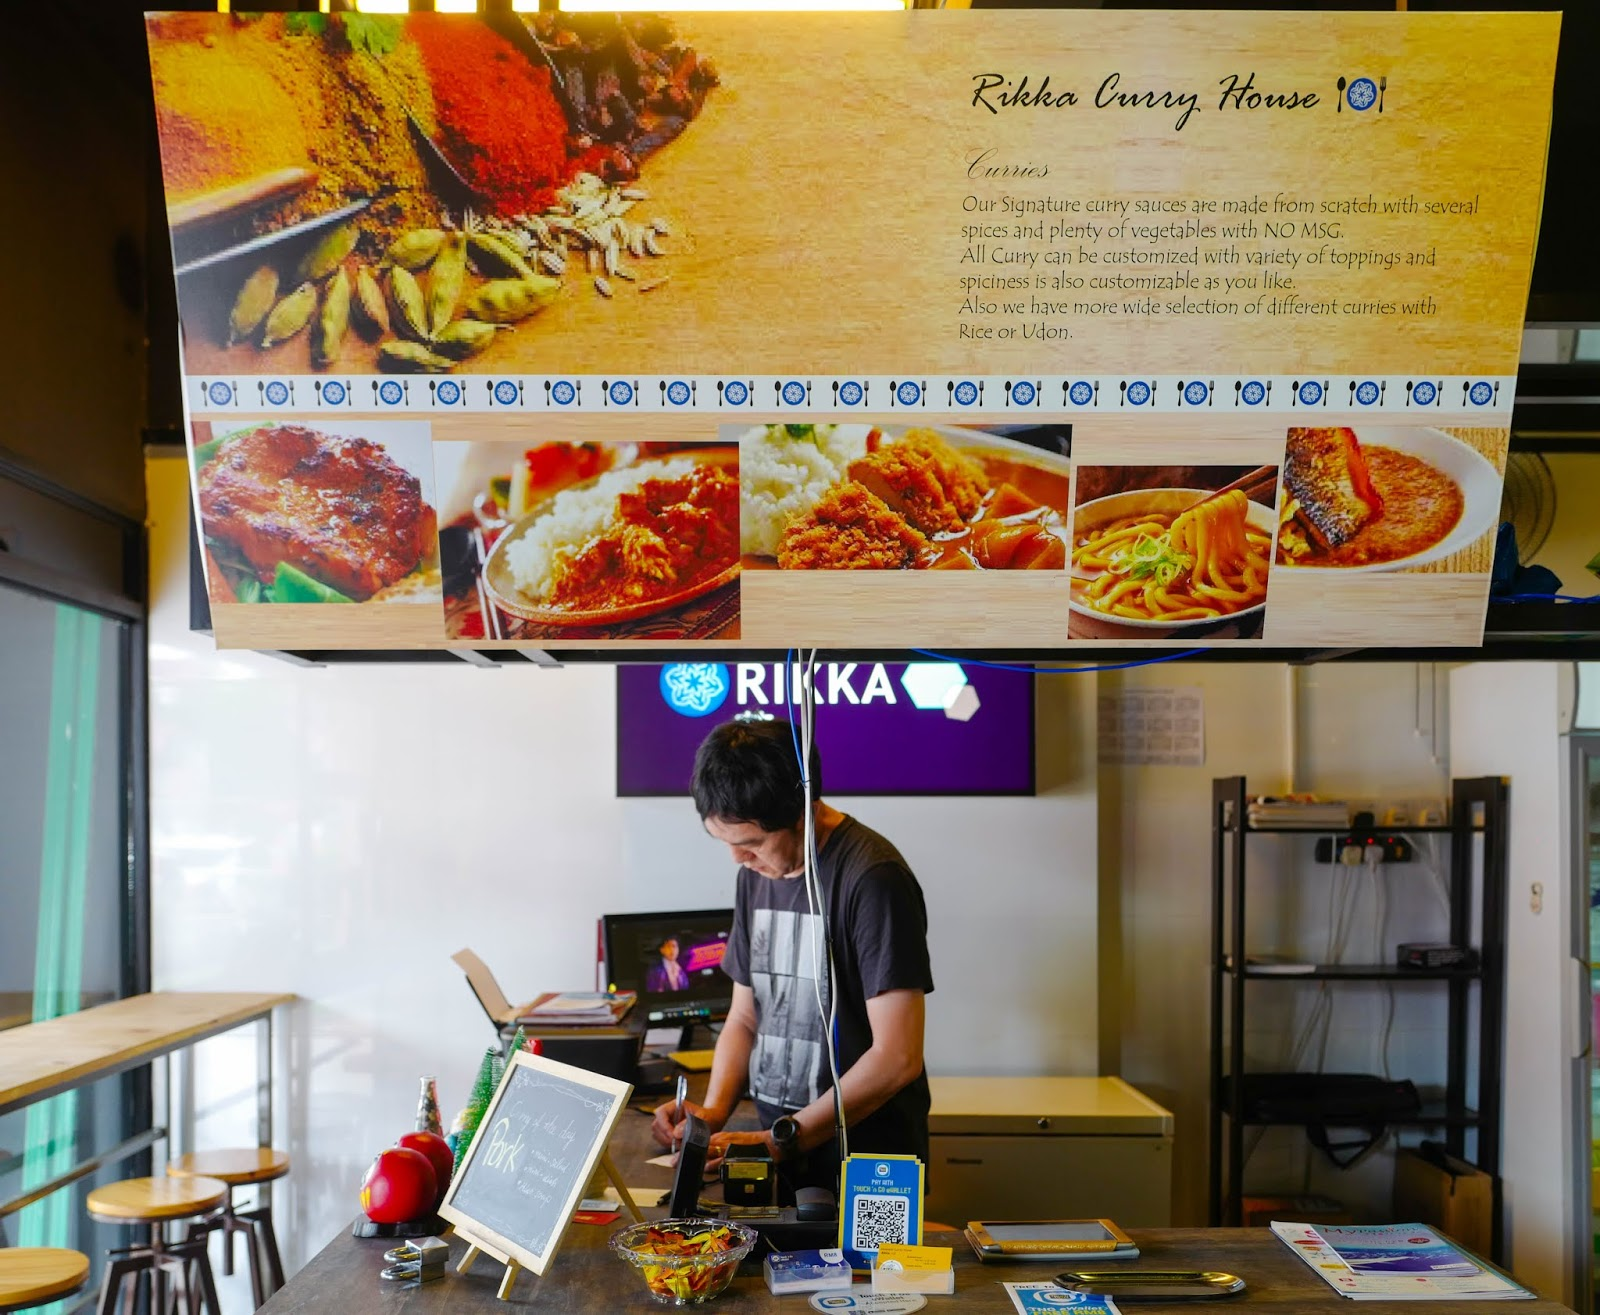 rikka japanese curry house, kota kemuning